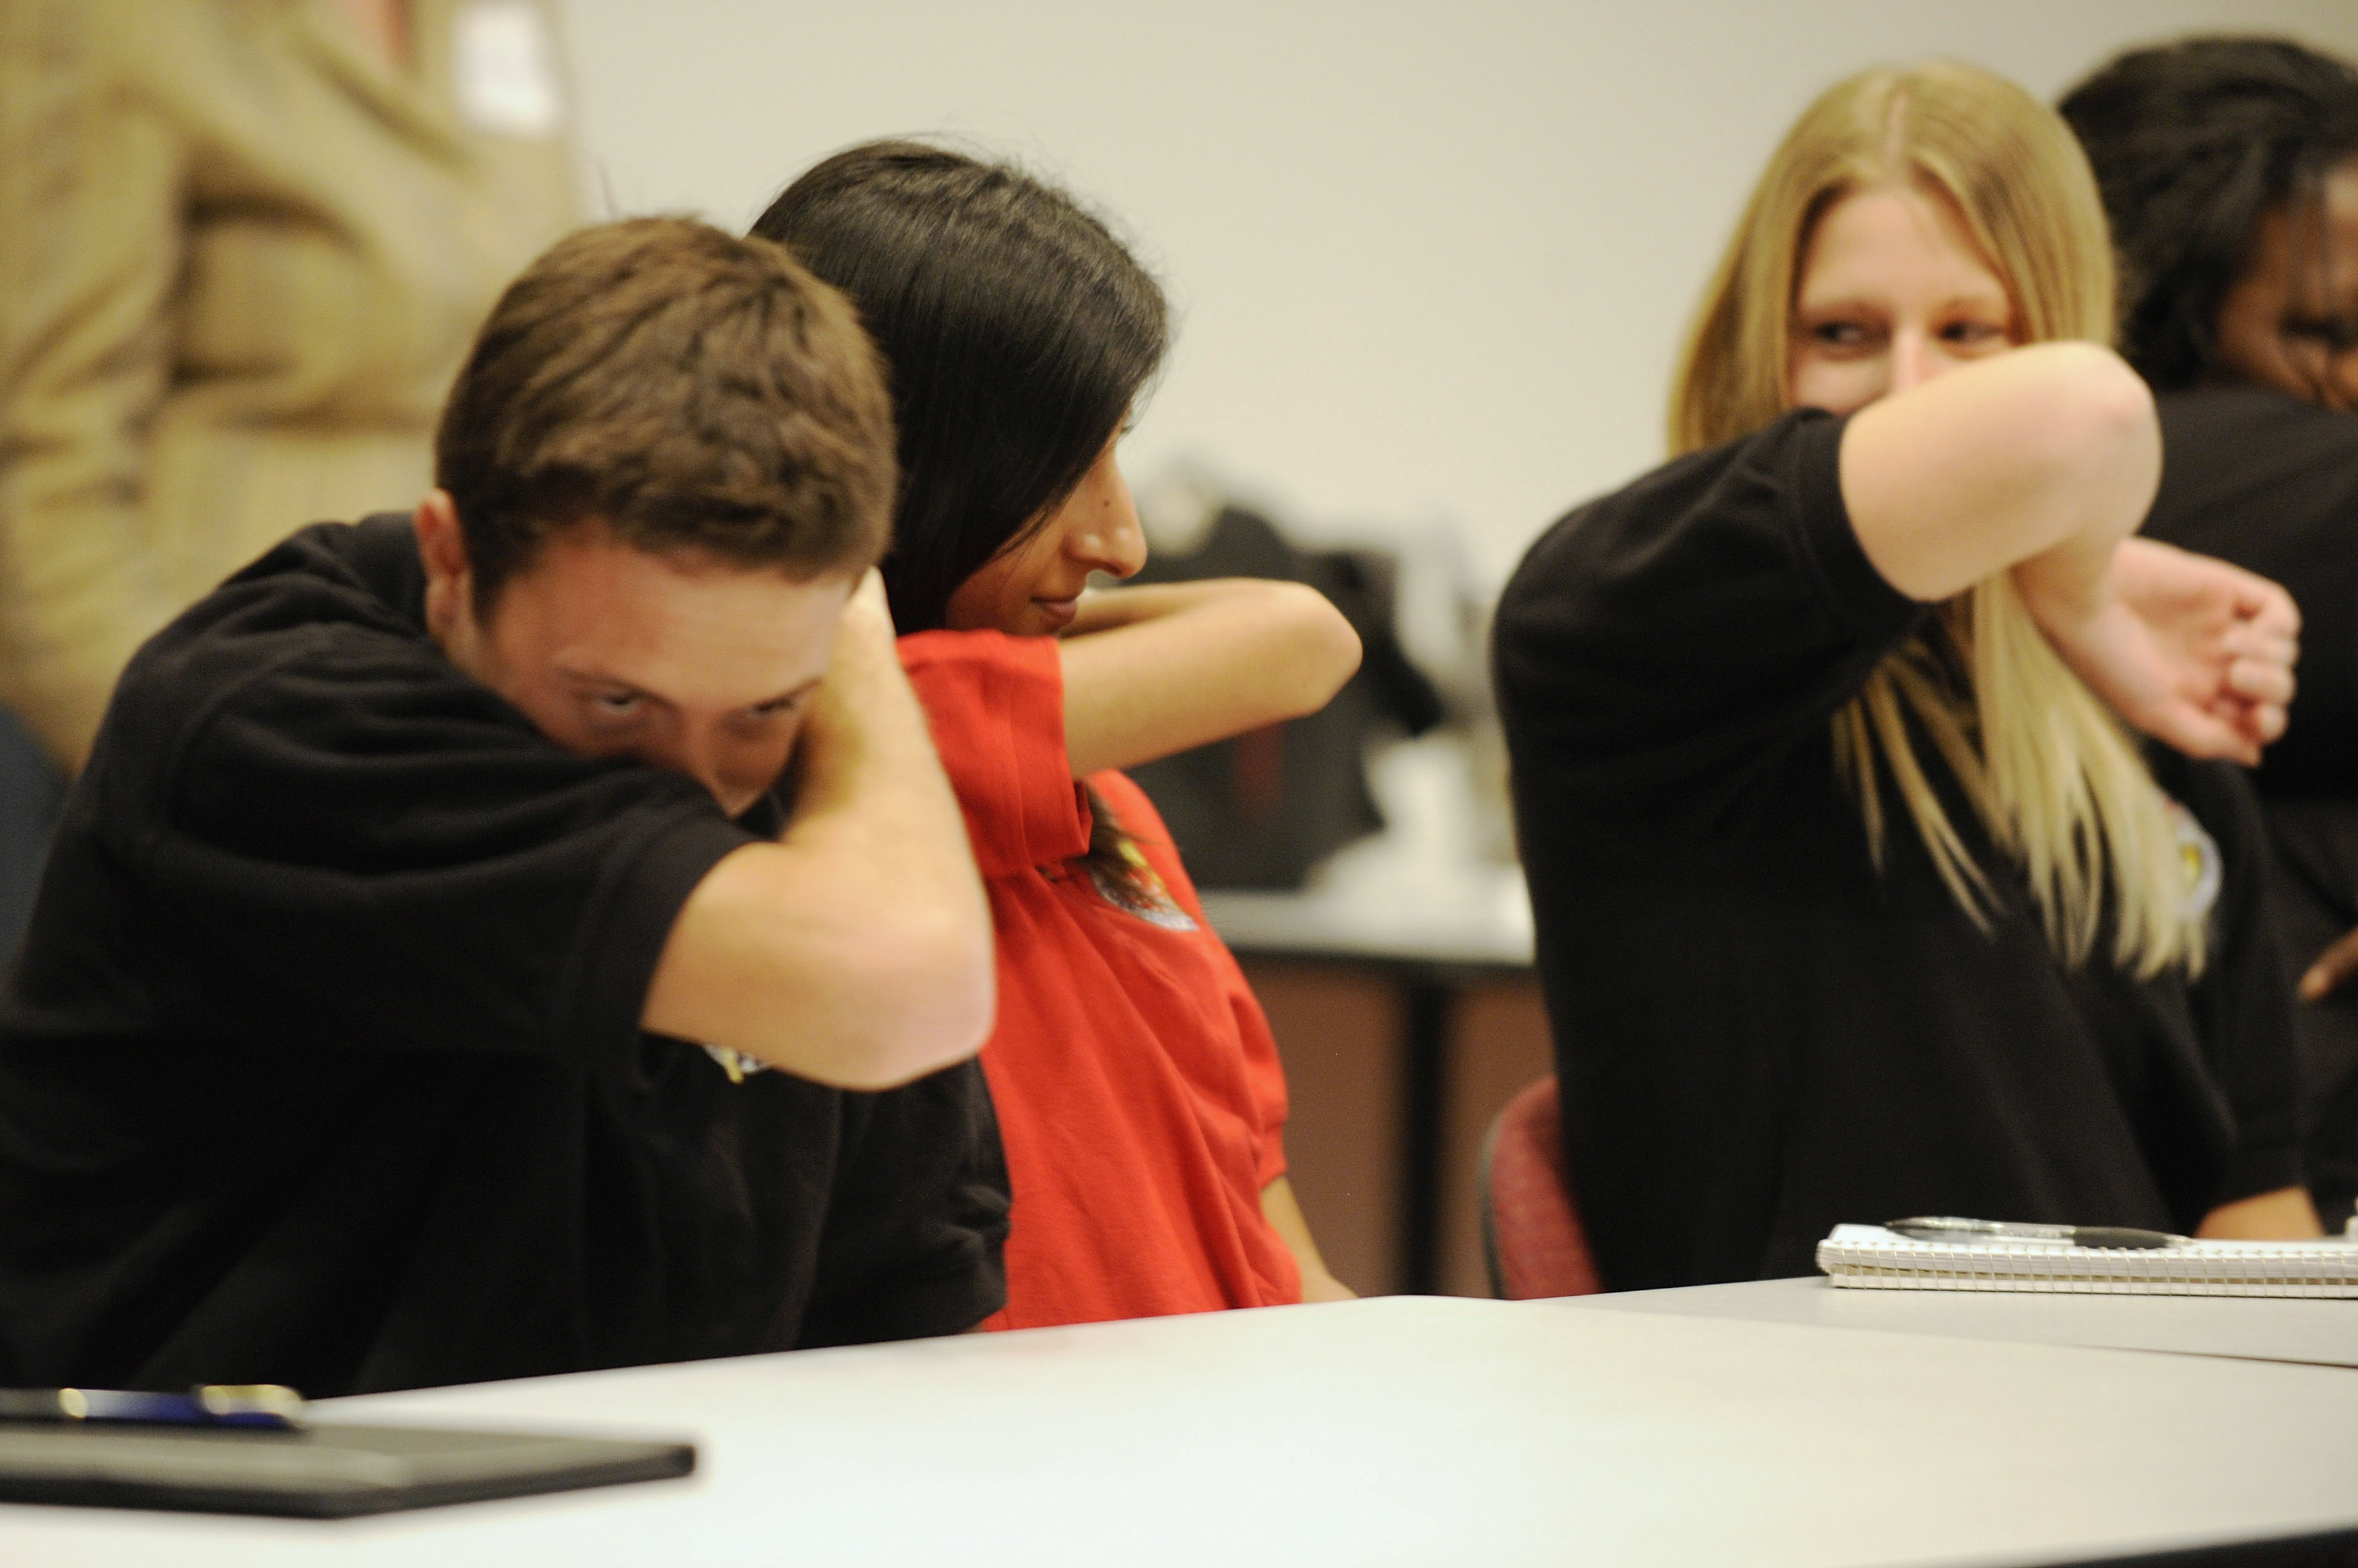 People practice coughing into their sleeves as a way to try to control the spread of the H1N1 swine flu virus, during a meeting for workers at the Maryland Department of Health and Mental Hygiene in Baltimore, September 3, 2009. The new H1N1 virus has killed 36 U.S. children, the U.S. Centers for Disease Control and Prevention reported on Thursday.   REUTERS/Jonathan Ernst    (UNITED STATES HEALTH) - GM1E5940AL301